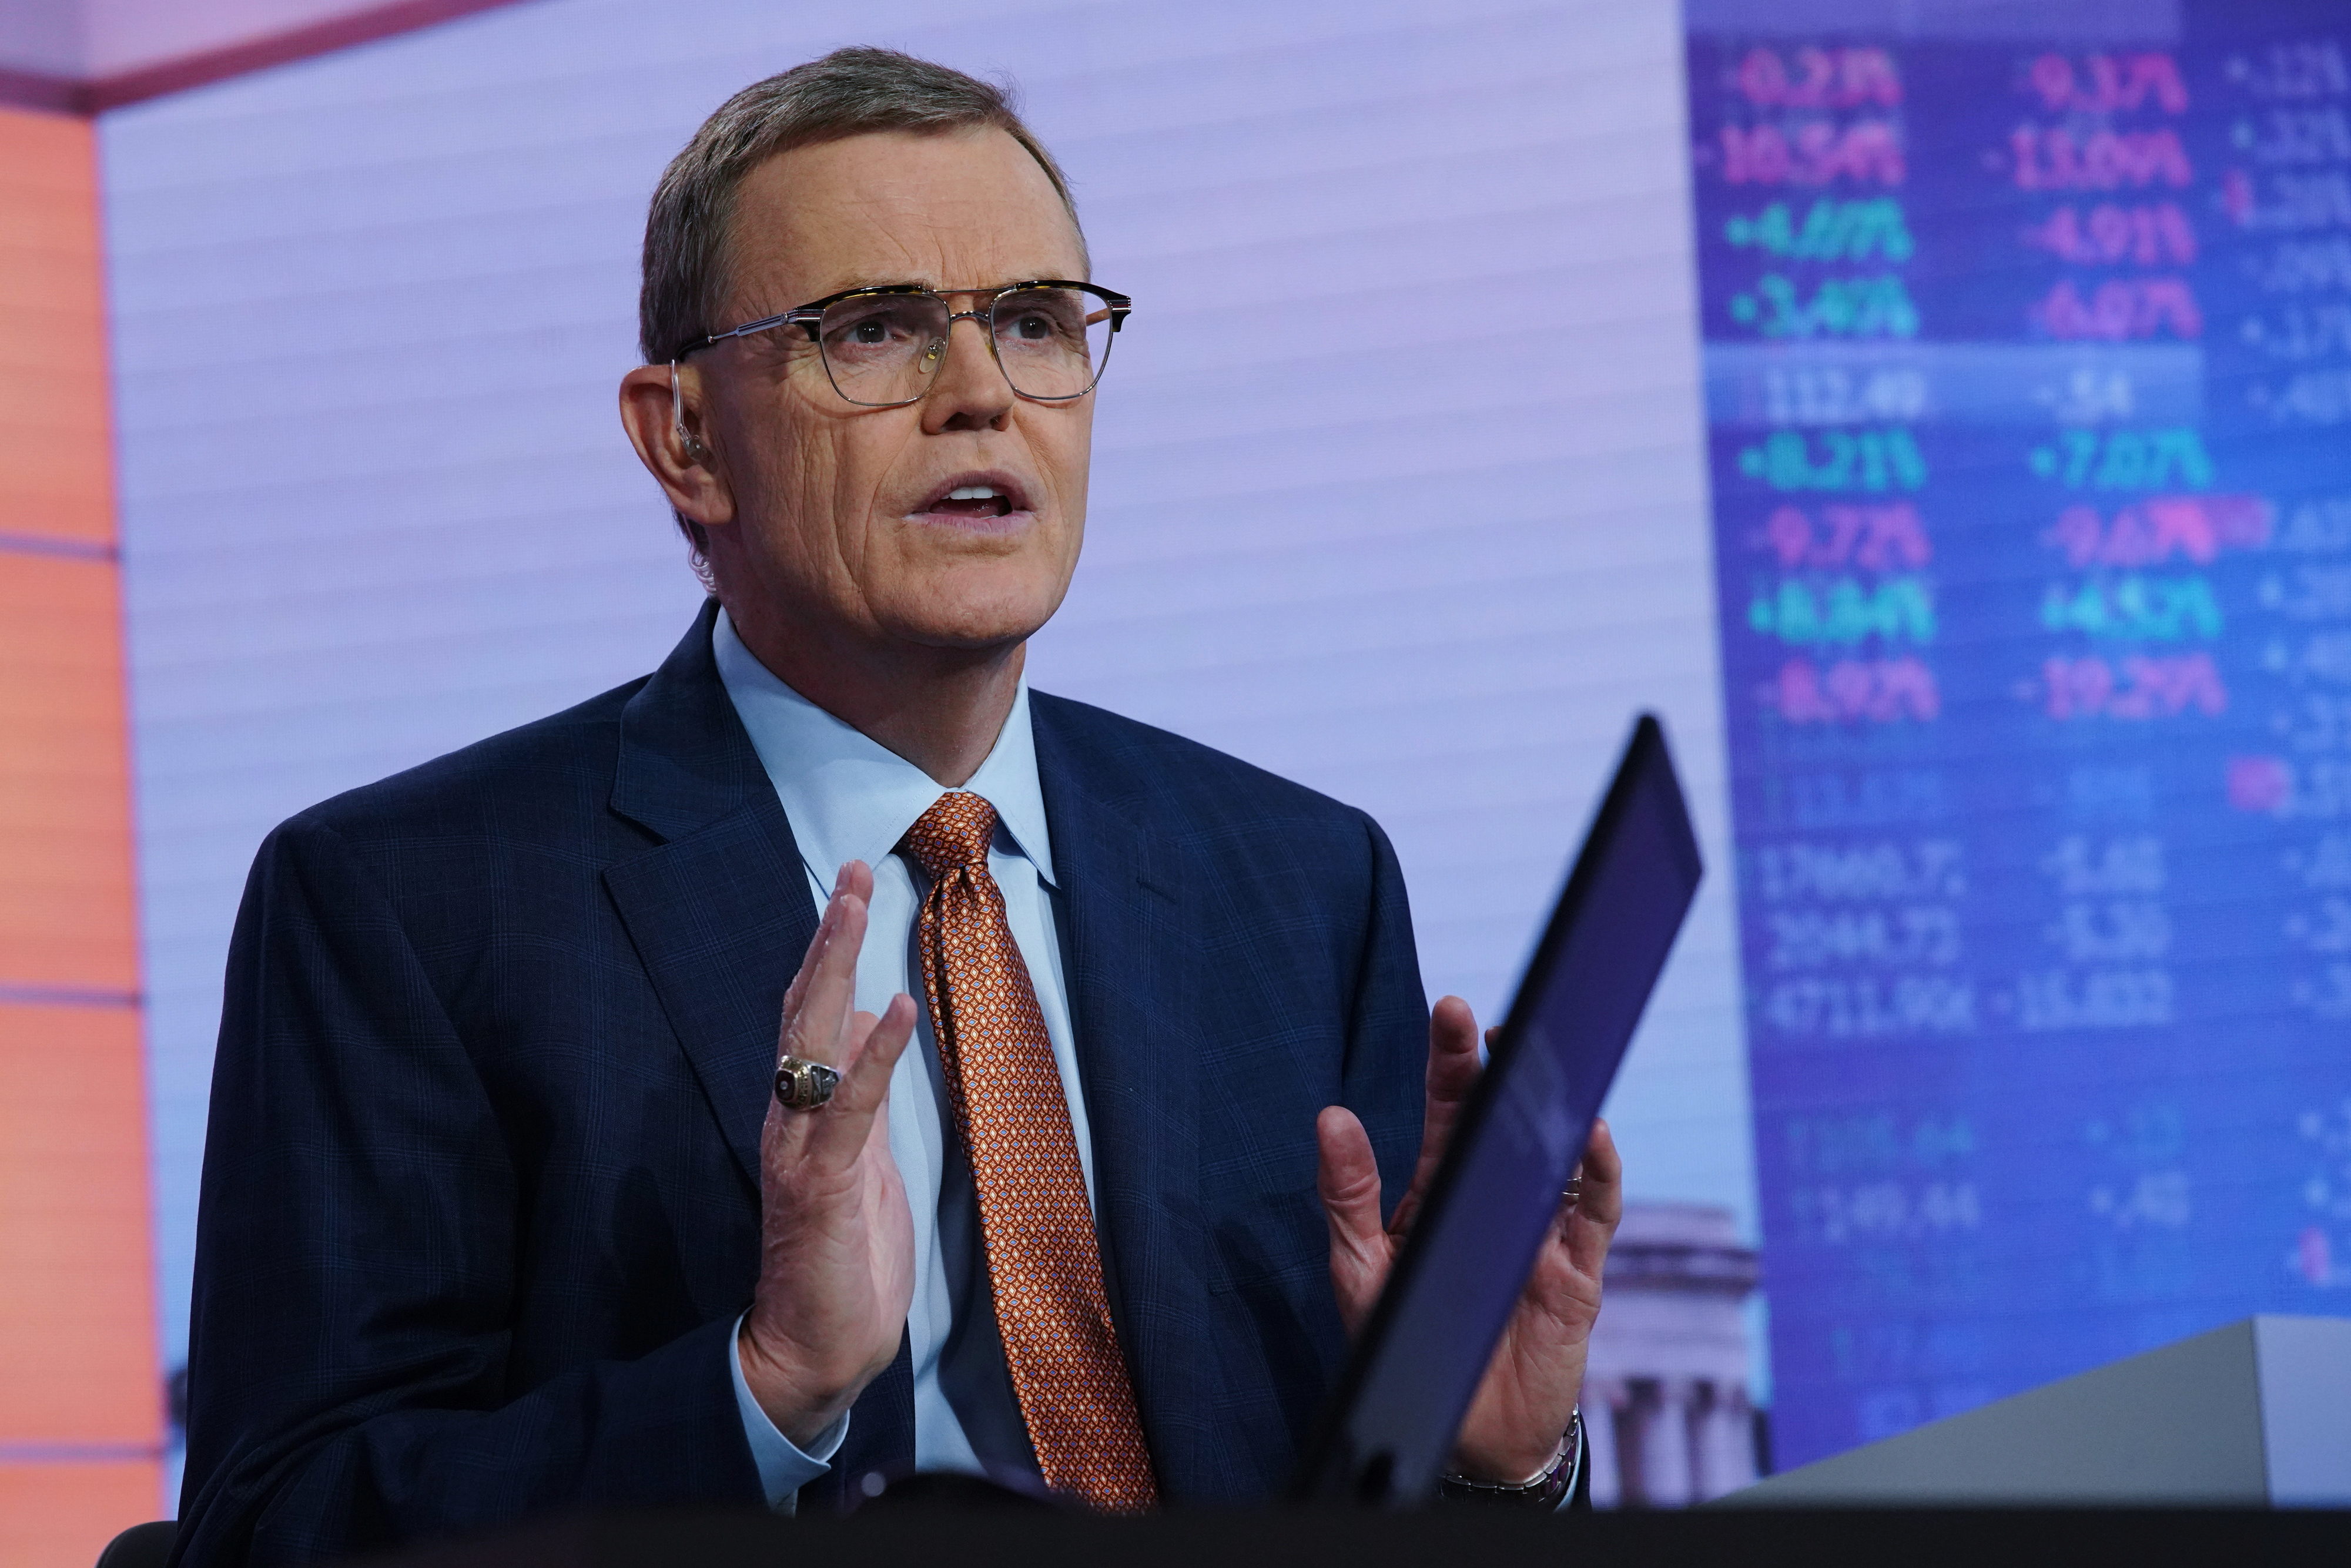 David Abney, chairman and chief executive officer of United Parcel Service Inc., speaks during a Bloomberg Television interview in New York, U.S., on Wednesday, July 24, 2019. UPS rose the most in more than 10 years after beating its own profit guidance, an early sign that a three-year, $20 billion expansion plan is paying off by keeping rising costs in check. Photographer: Christopher Goodney/Bloomberg via Getty Images